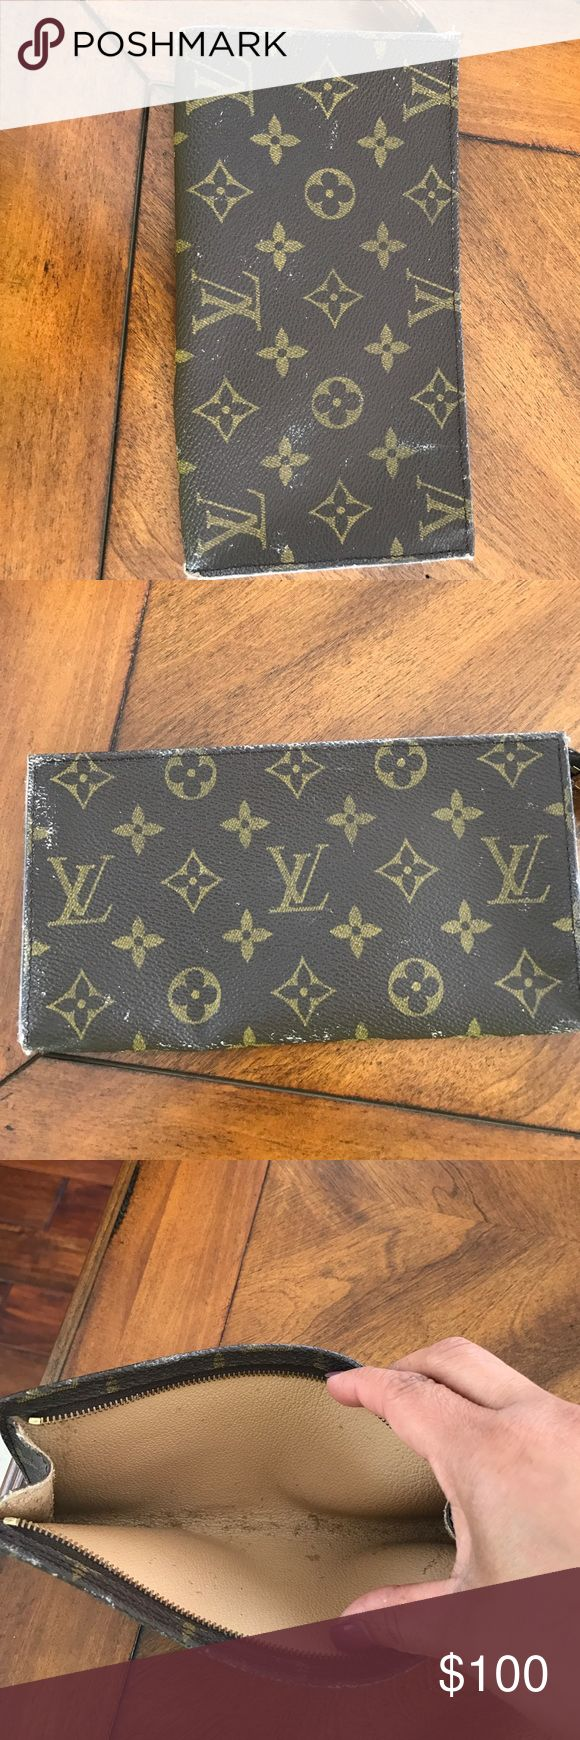 Authentic Louis Vuitton Pochette 100% authentic, minor scuffs on edges but is because my monogram canvas bucket was peeling and the pouch was inside, zipper works, inside it's a little bit of sticky, if you want more pictures let me know. Louis Vuitton Bags Clutches & Wristlets